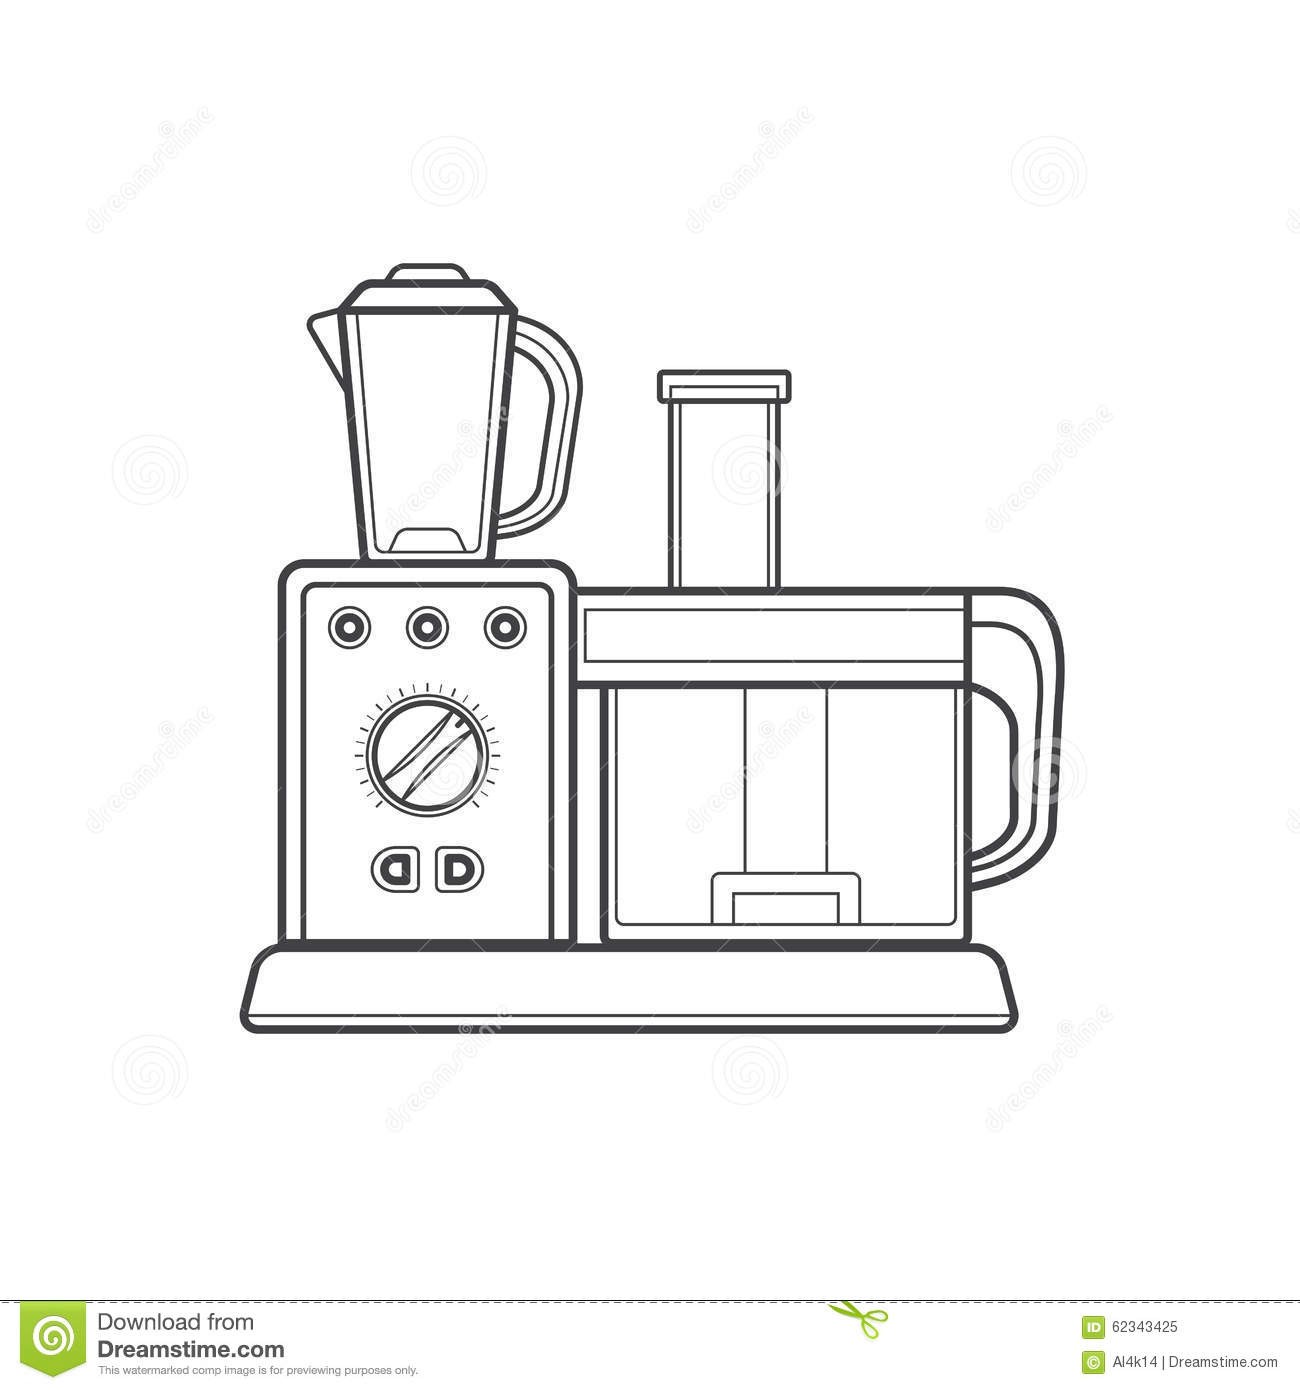 Outline Kitchen Food Processor Illustration Stock Photo ...